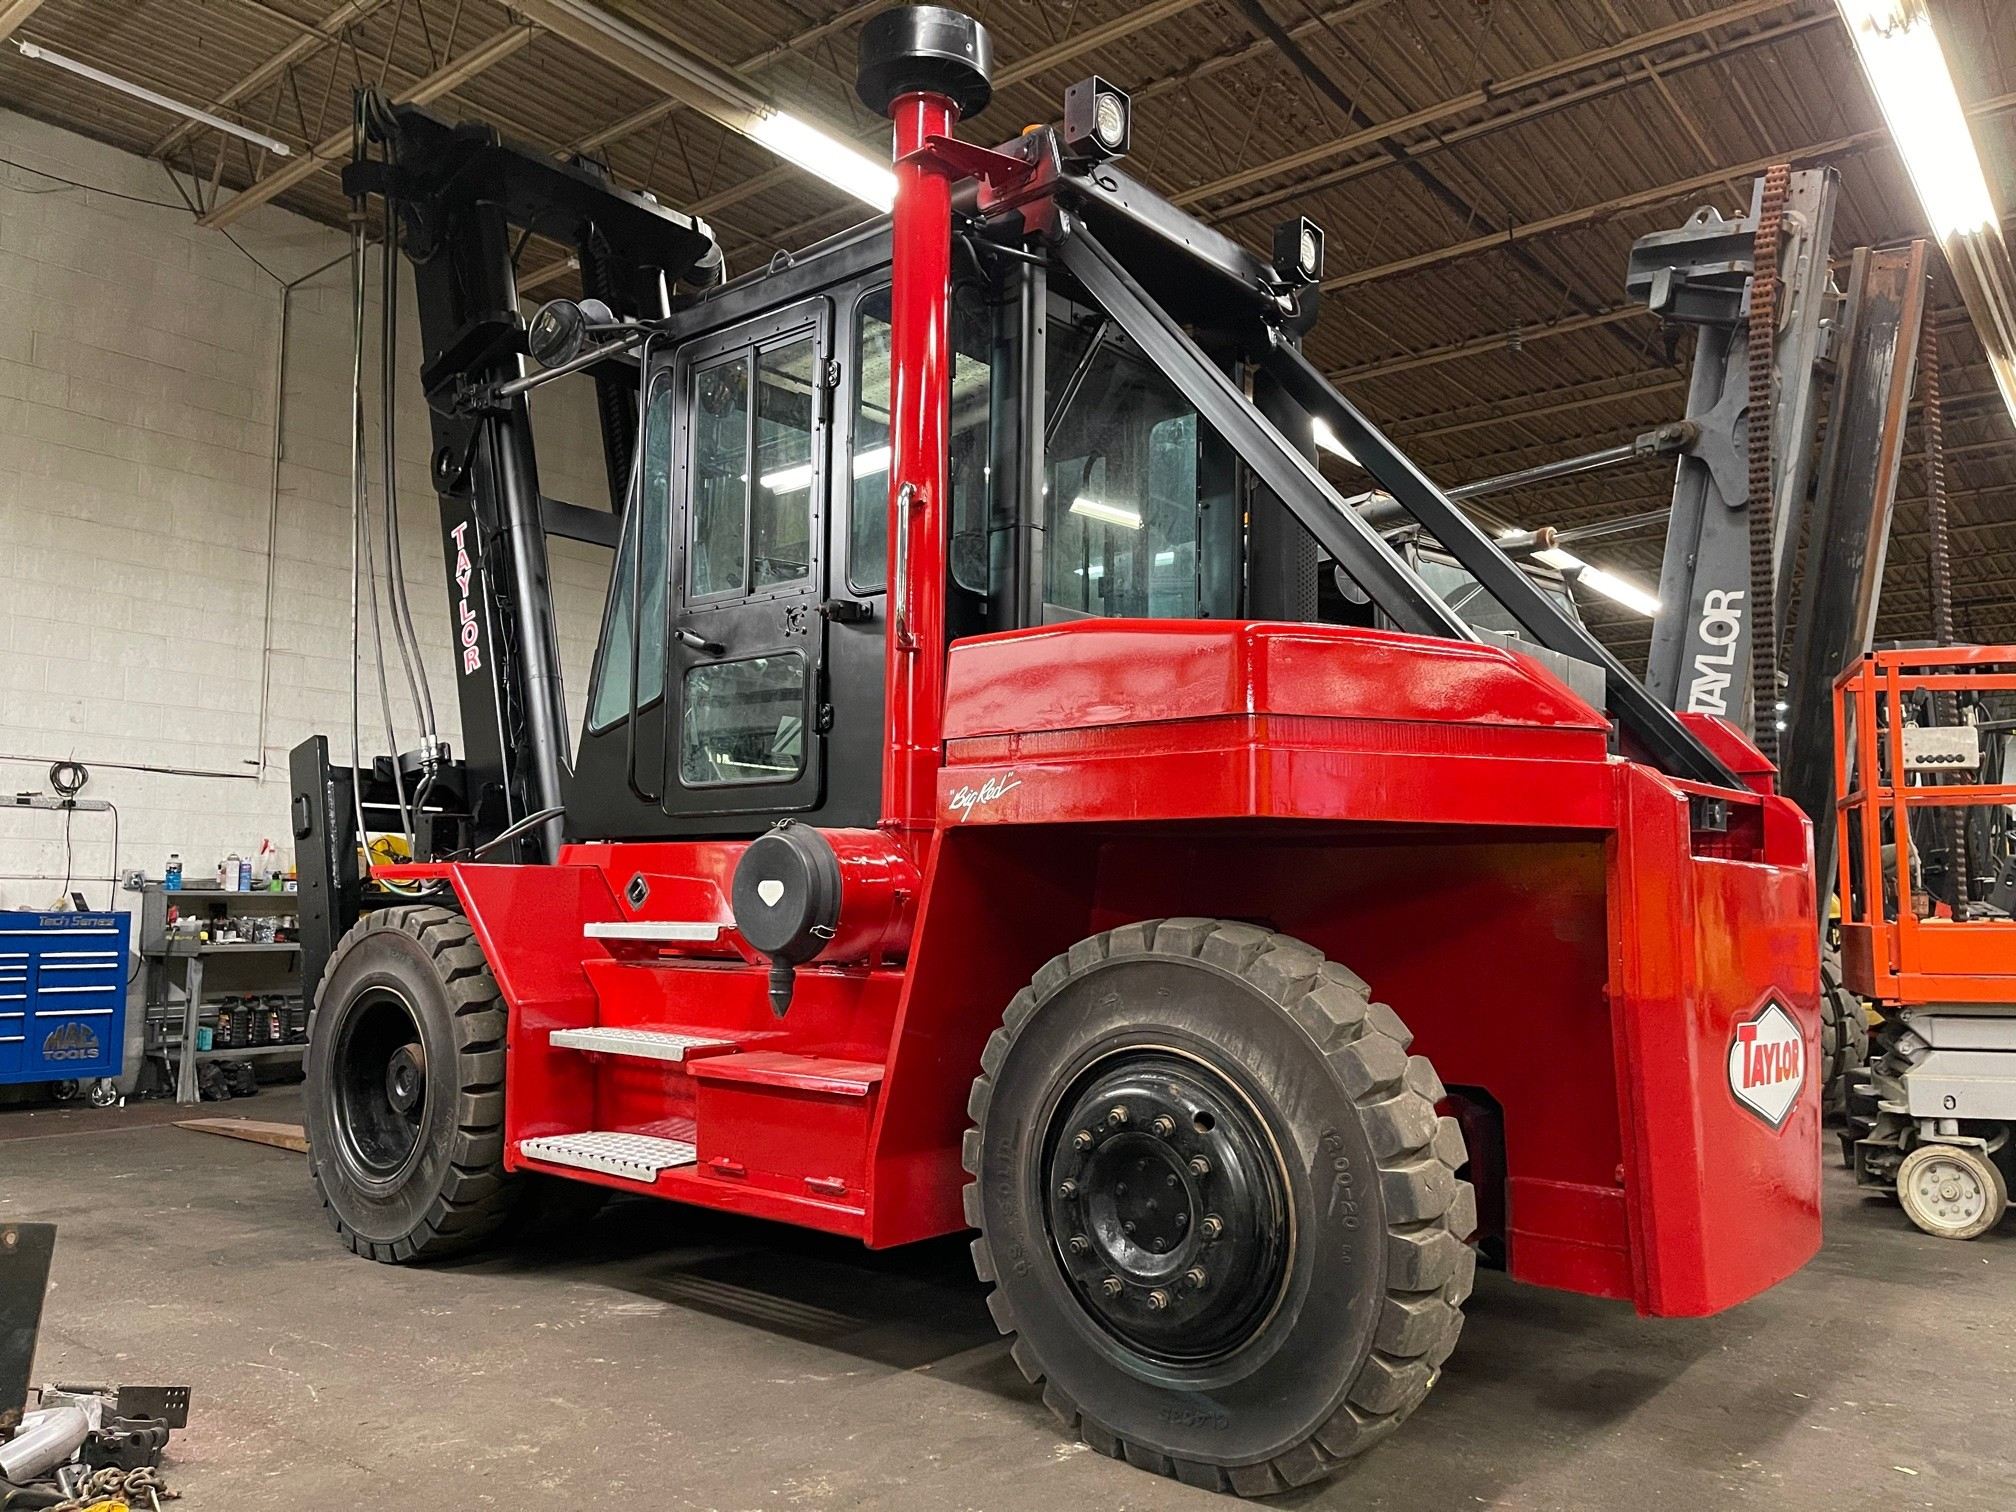 Used, 2008, Taylor, TX300S, Forklifts / Lift Trucks